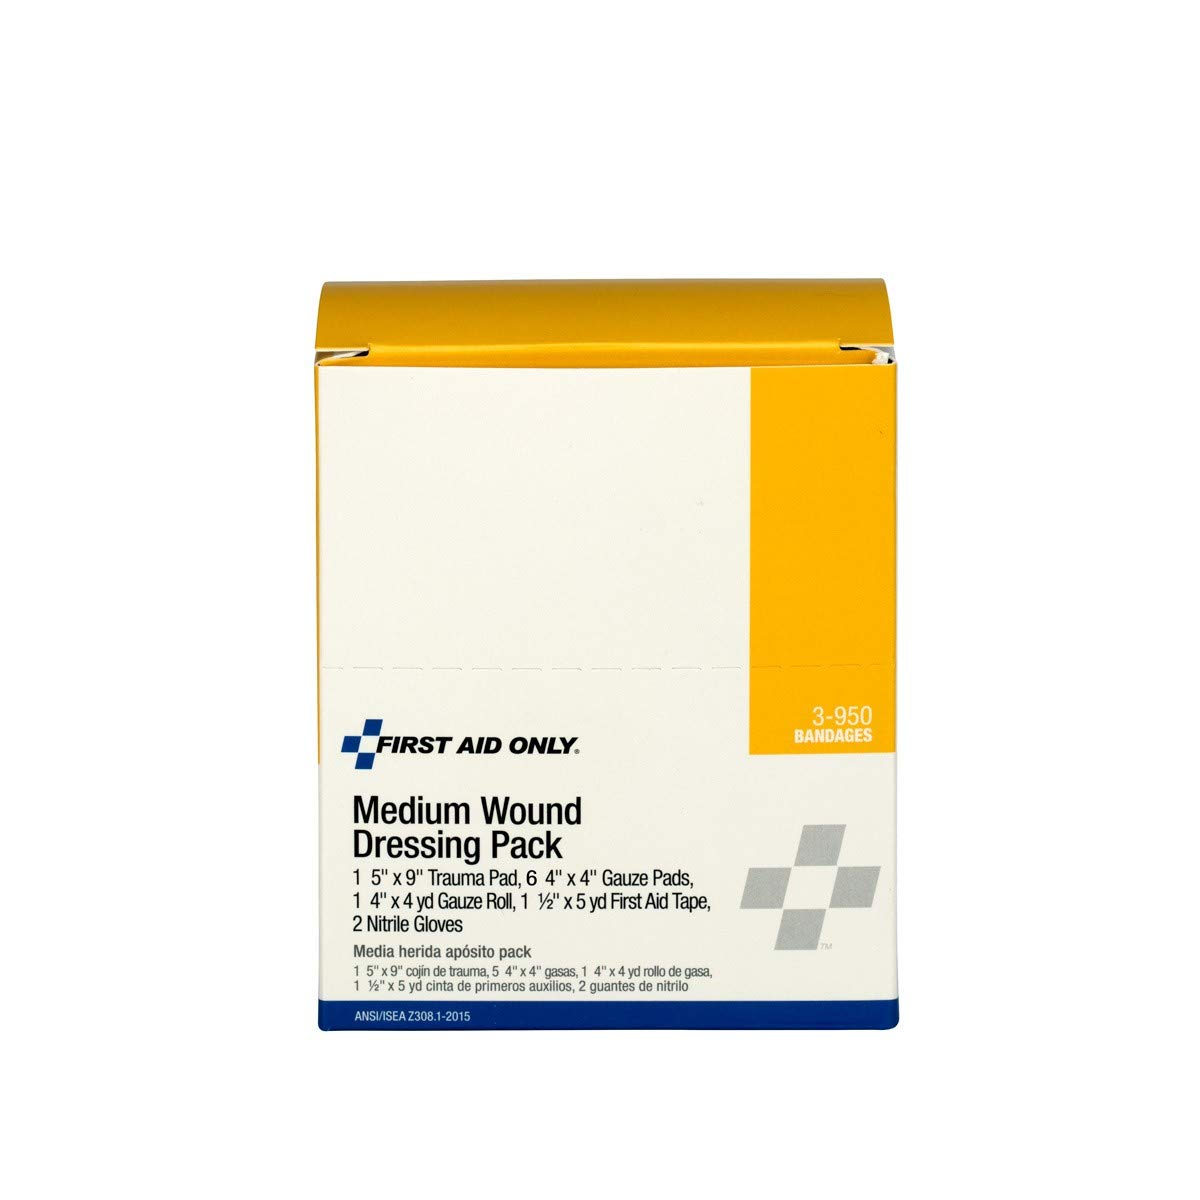 Medium Wound Dressing Pack First Aid Kit - Emergency Kit ...